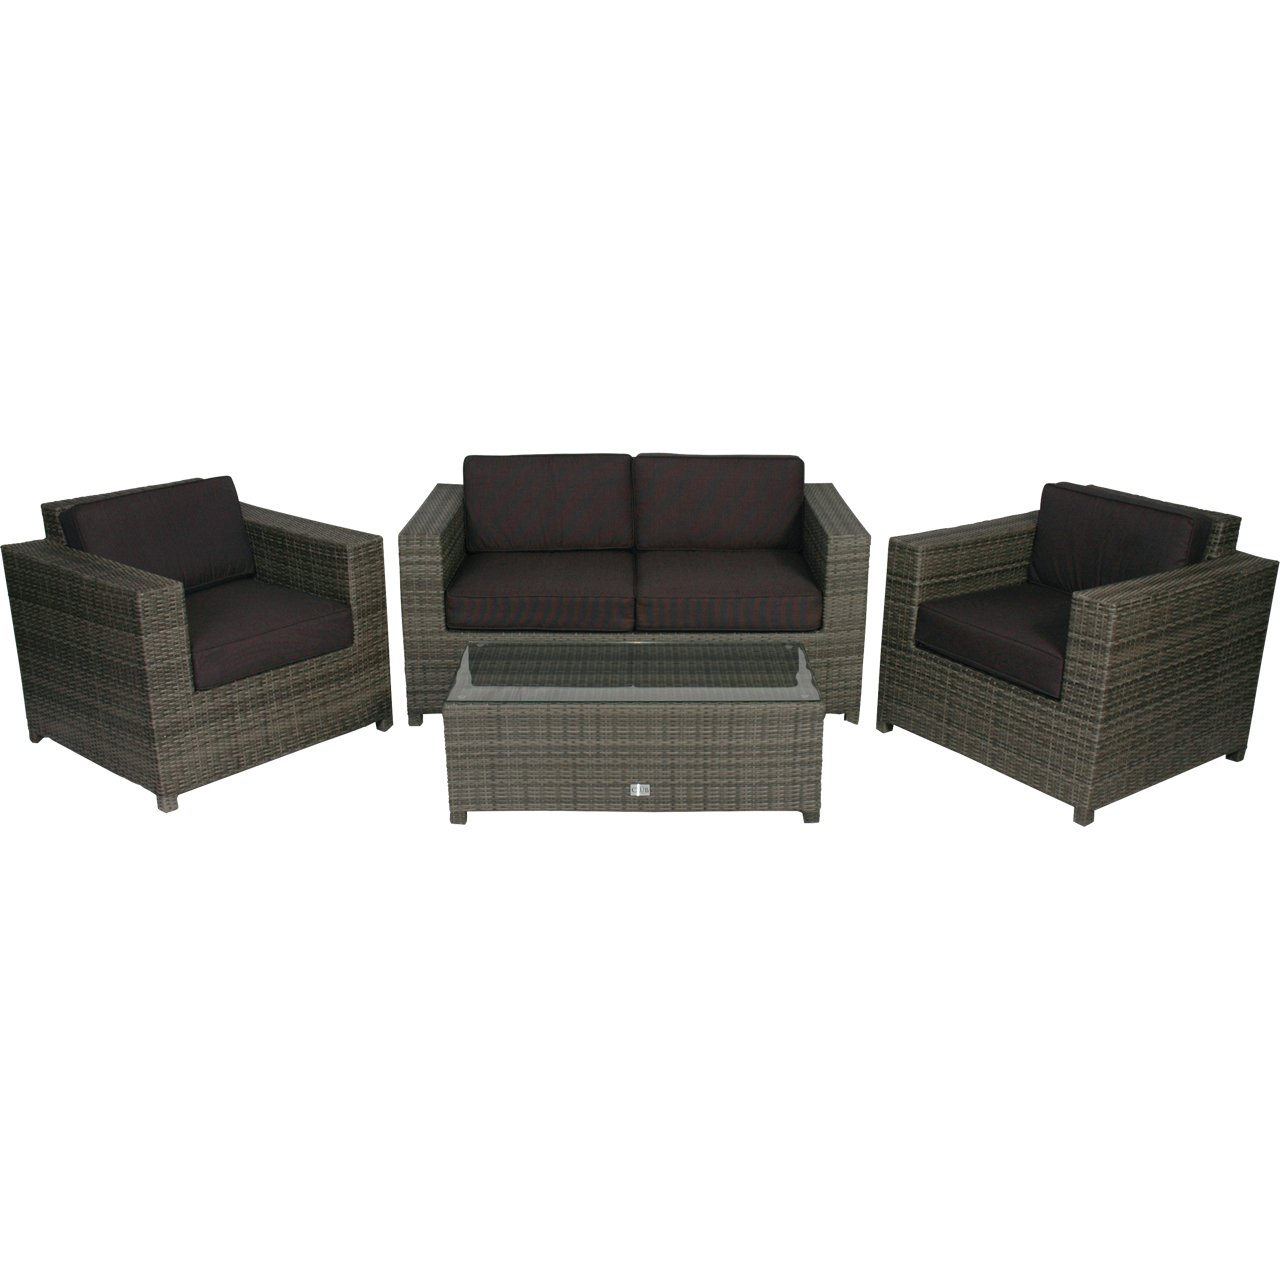 poly rattan lounge set 4tlg grau gartenm bel tisch glasplatte g nstig kaufen. Black Bedroom Furniture Sets. Home Design Ideas